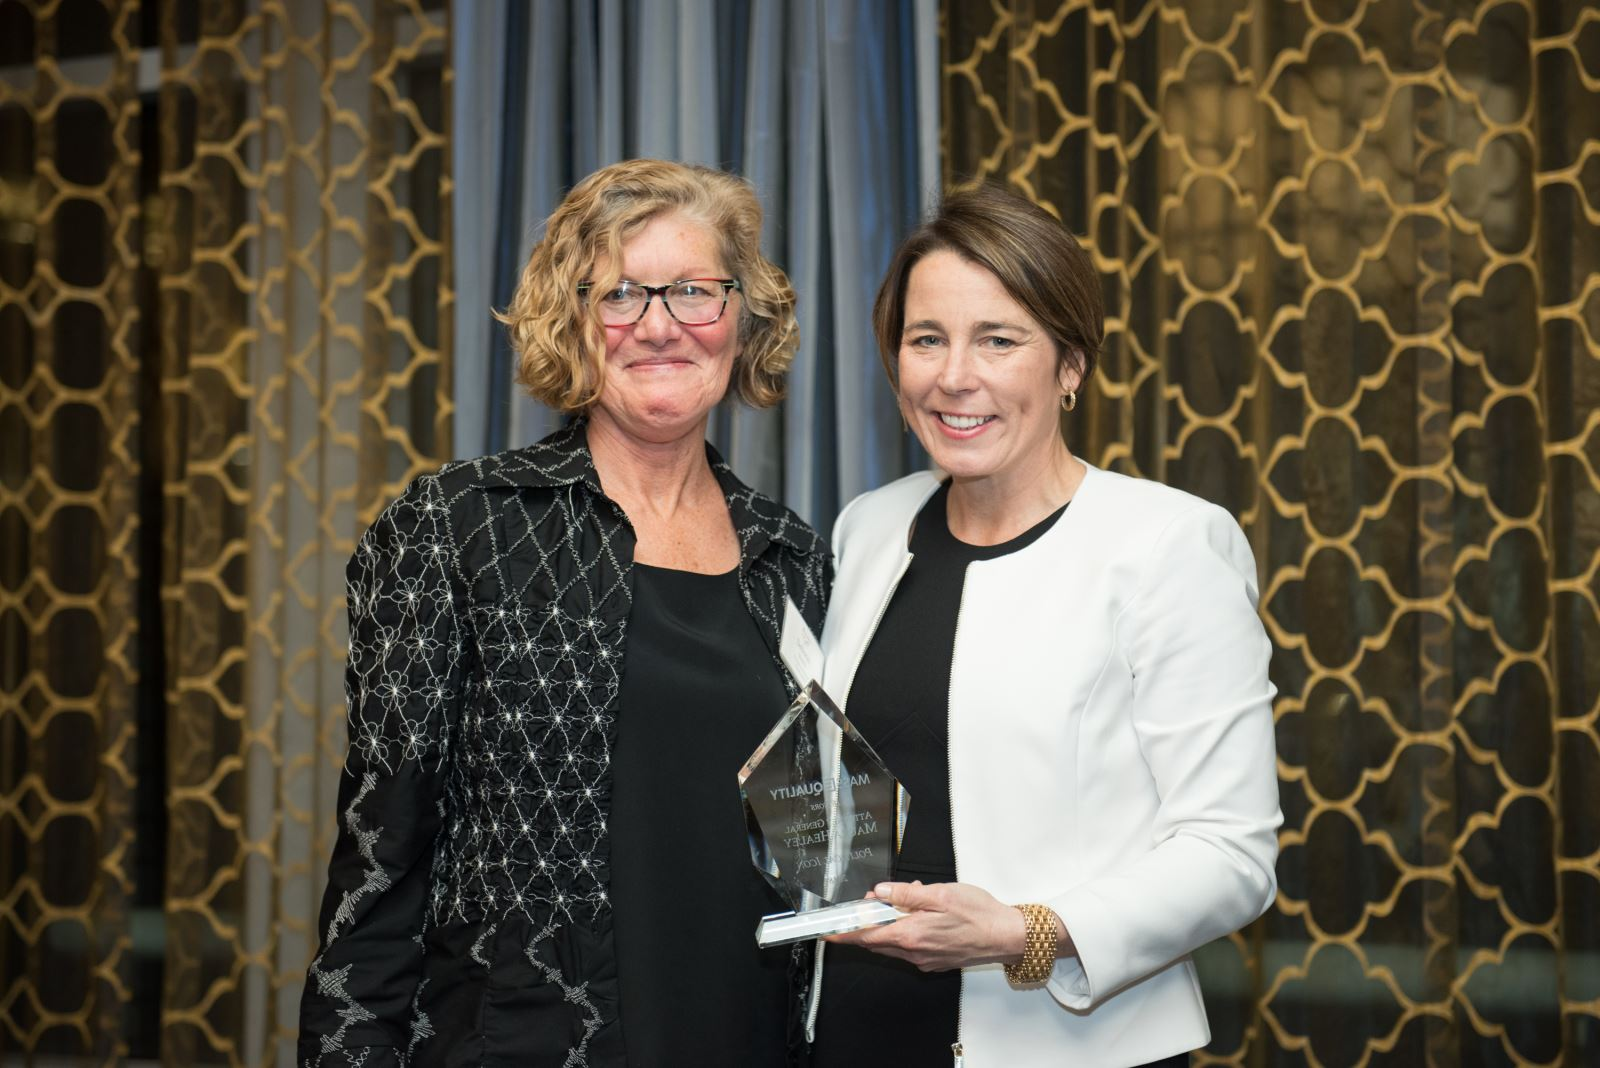 MassEquality Executive Director stands next to MA Attorney General Maura Healey at the 2018 Icon Awards